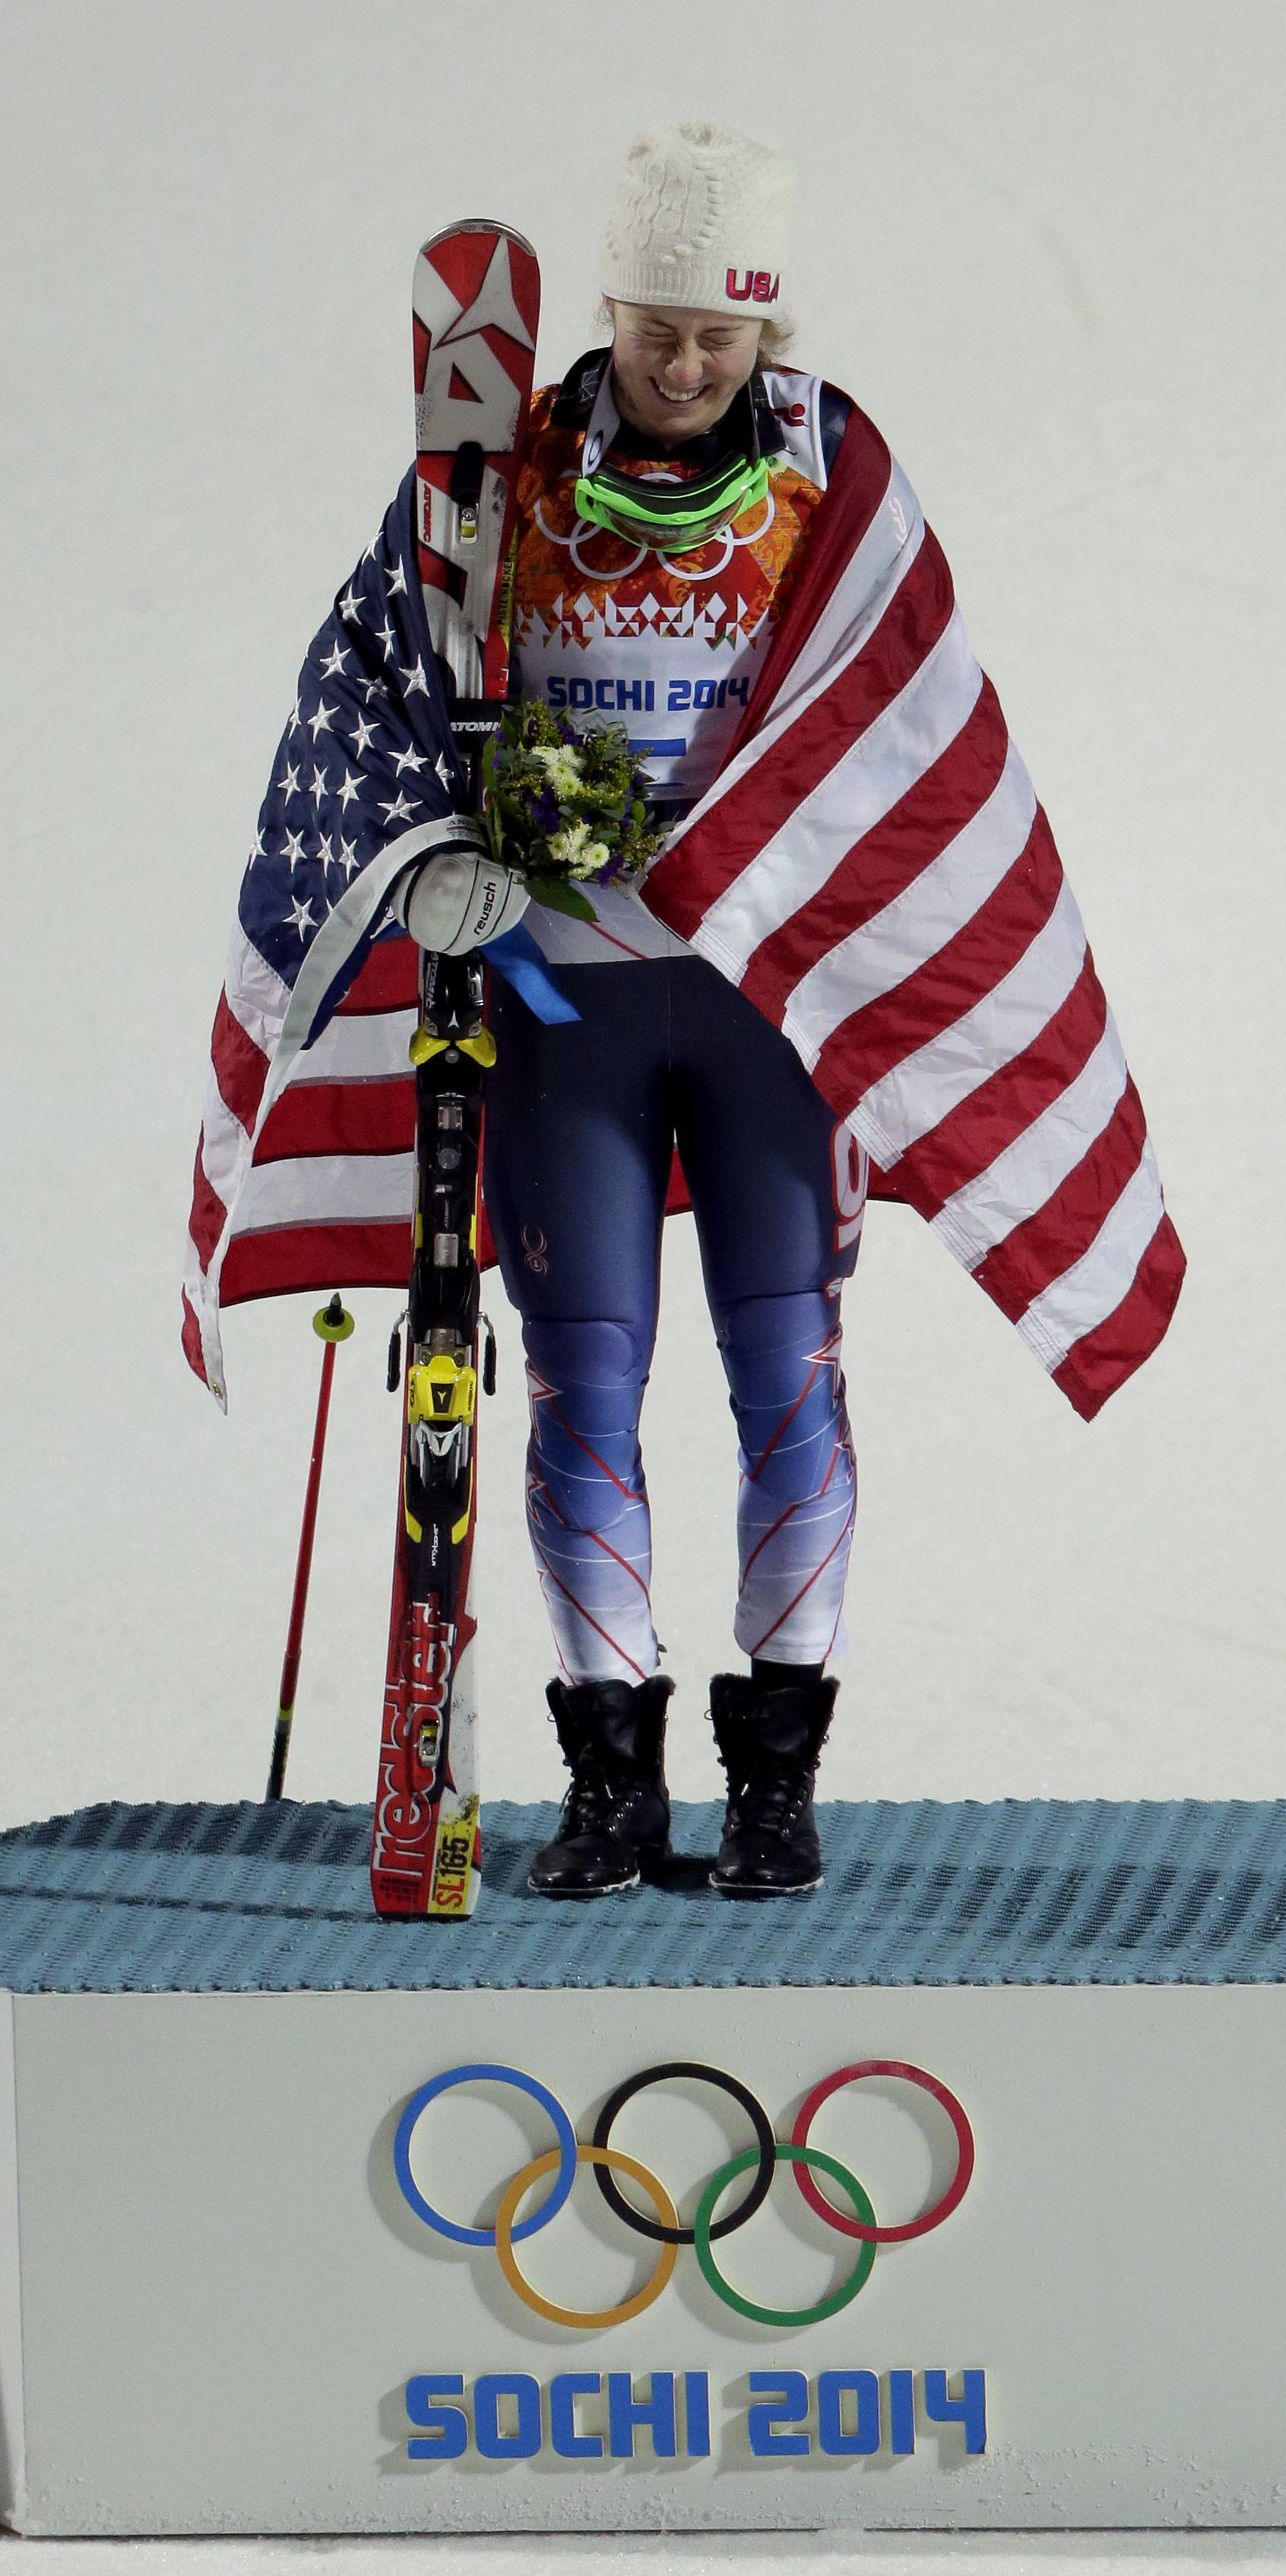 Women's gold medalist, United States' Mikaela Shiffrin, reacts after dropping her ski pole during the flower ceremony for the women's slalom.